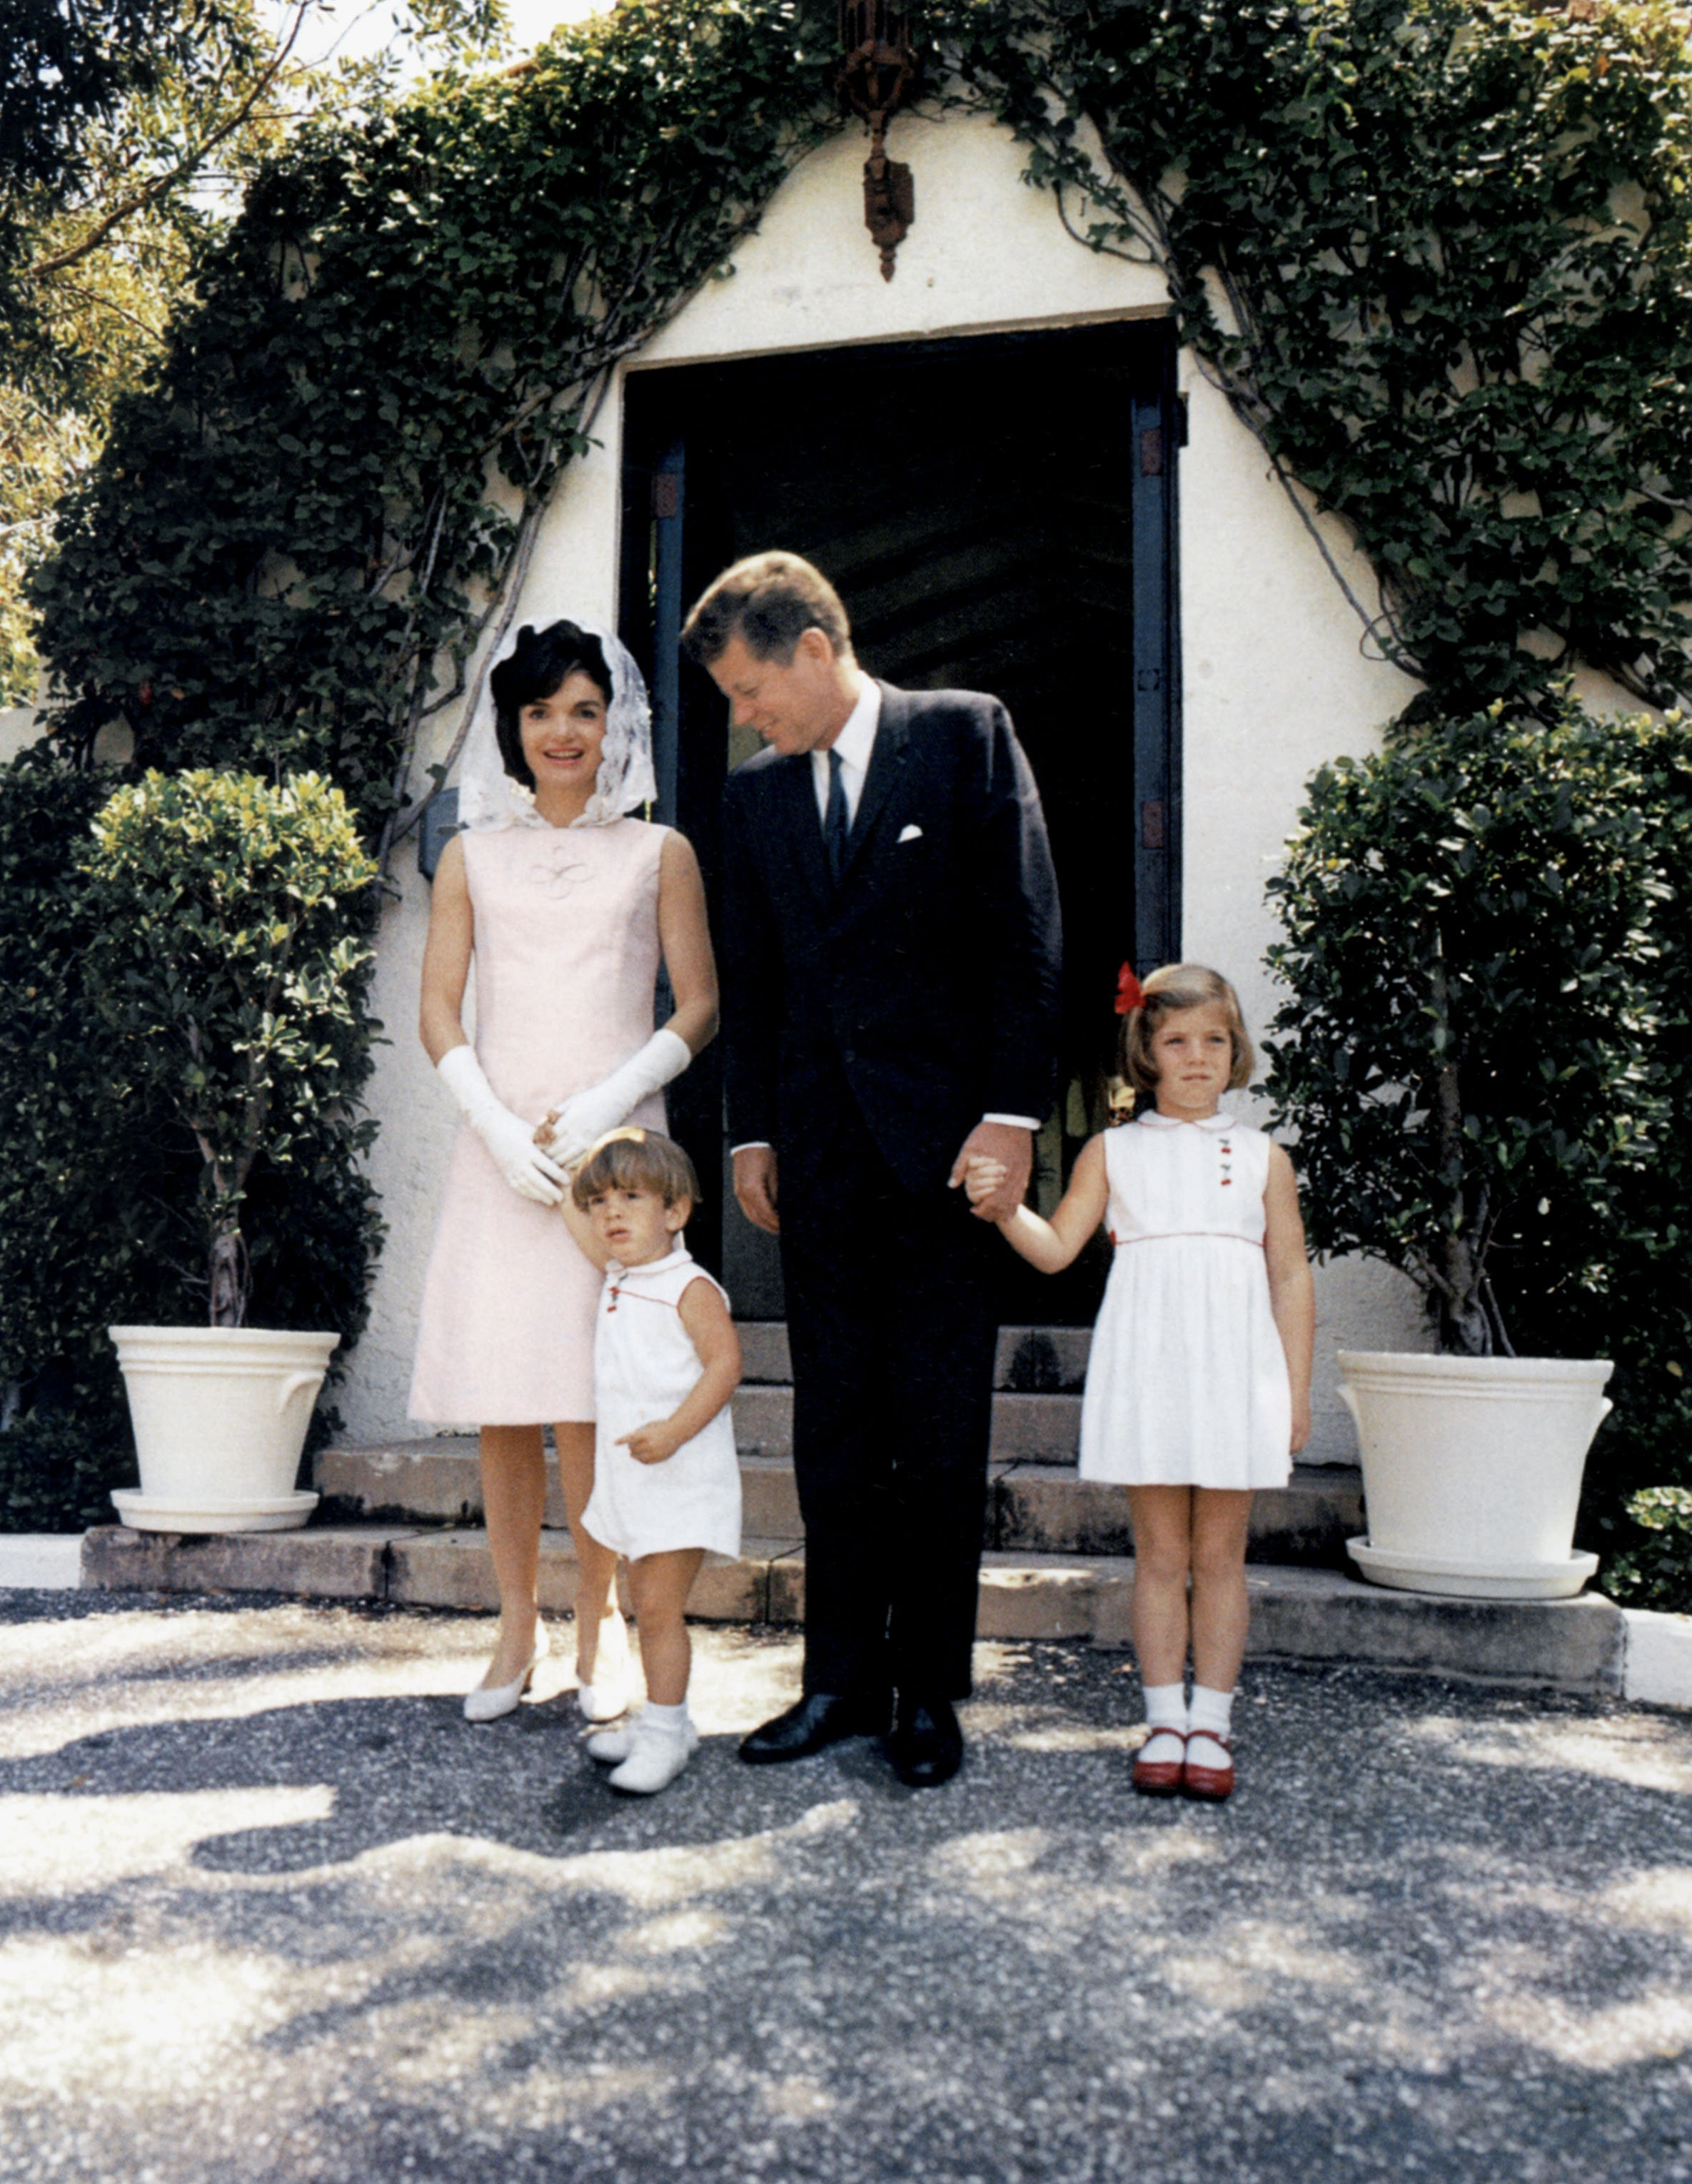 Jacqueline Kennedy with President John F. Kennedy and their two children John Jr and Caroline at Palm Beach, Florida on April 14, 1963 | Photo: Getty Images